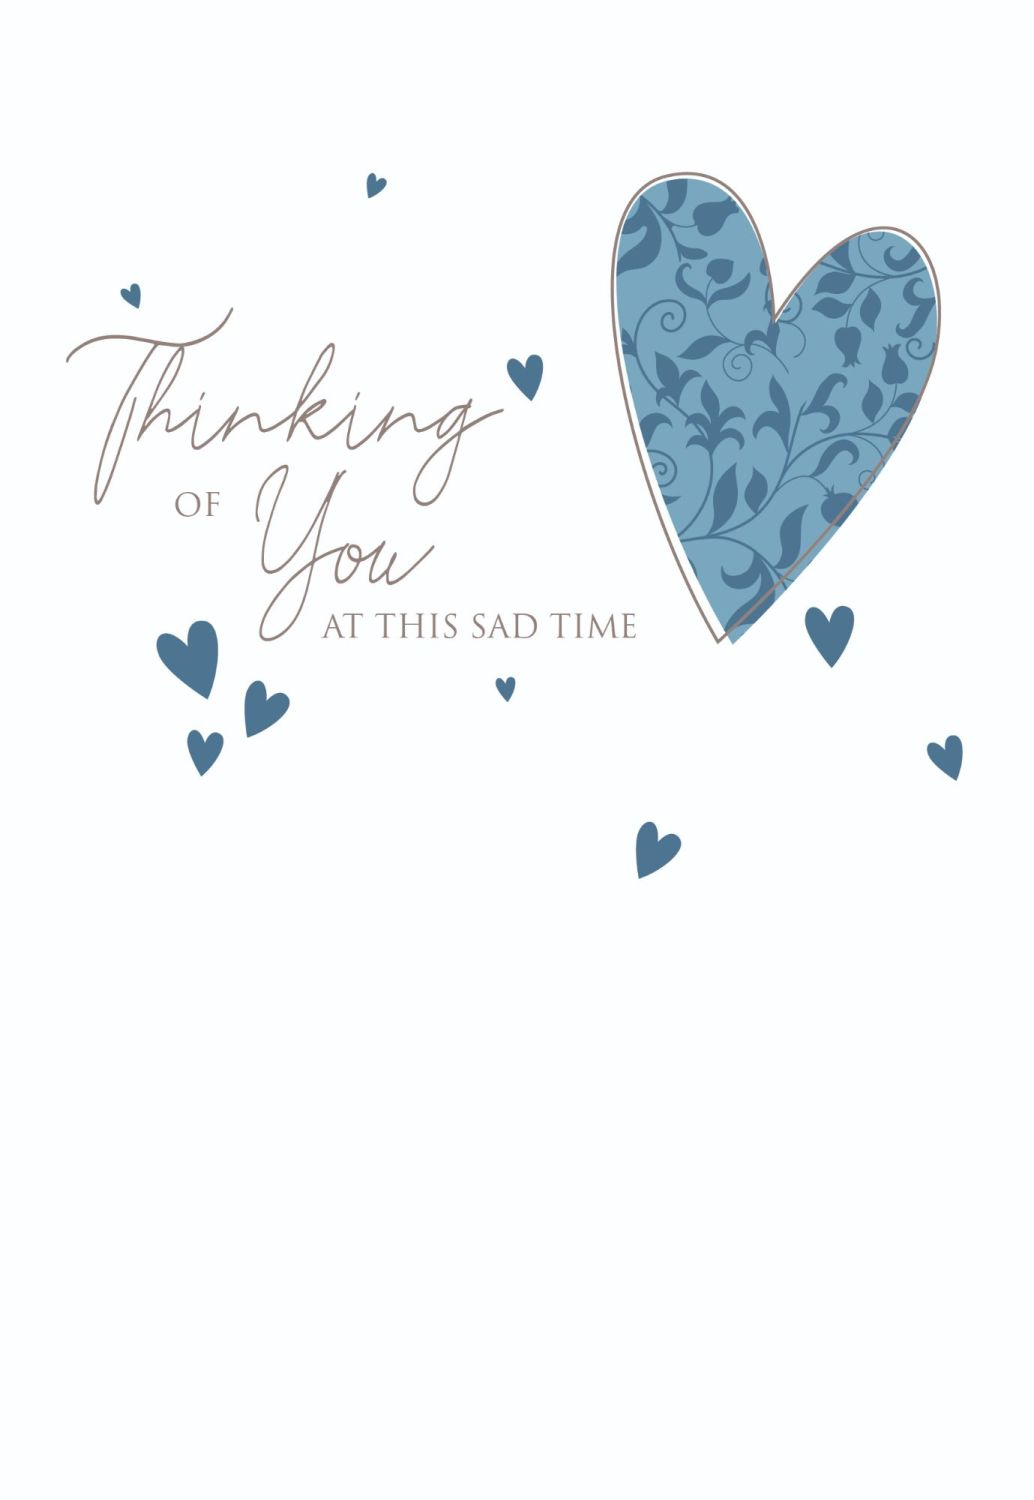 Thinking Of You Cards - THINKING Of YOU At This SAD Time - SYMPATHY Cards -